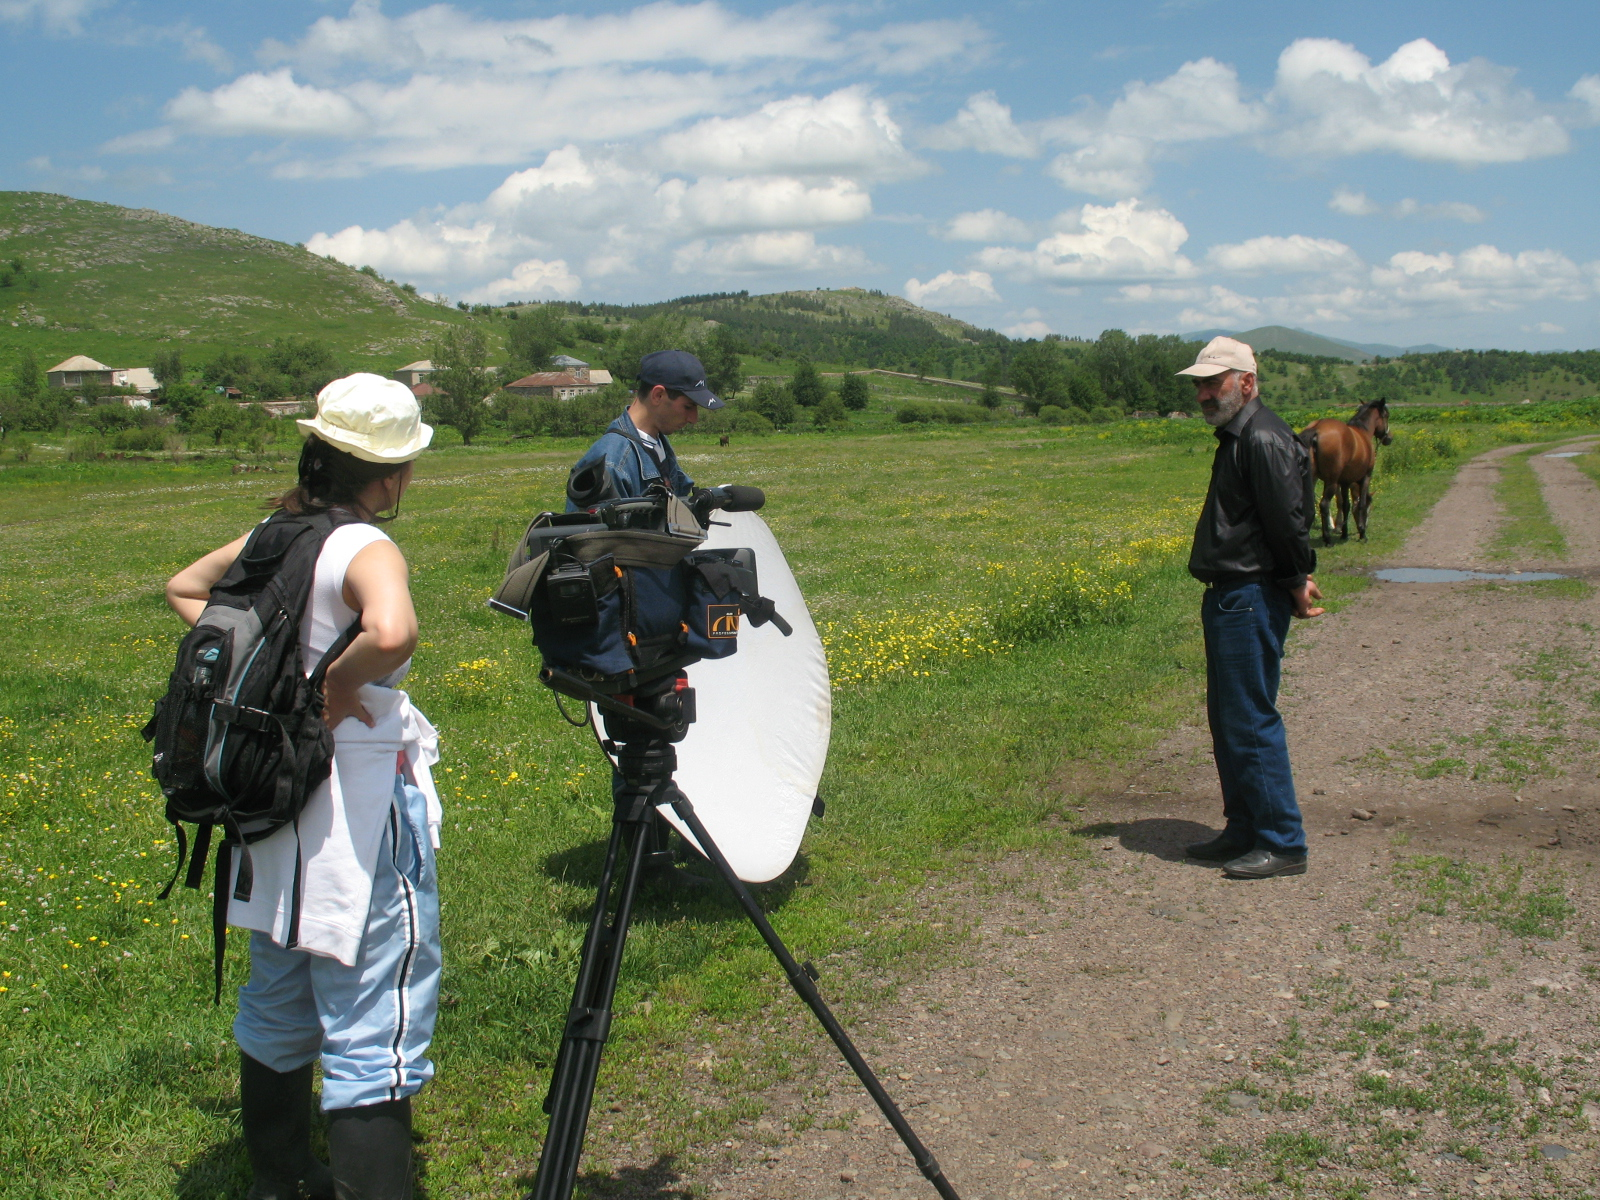 Filming 'From Home to Home' in Dzyunashogh, Armenia, 2008. Screenplay author Seda Muradyan and co-director Arsen Gasparyan. From Seda Muradyan's archive. Documentary films about the Karabakh war